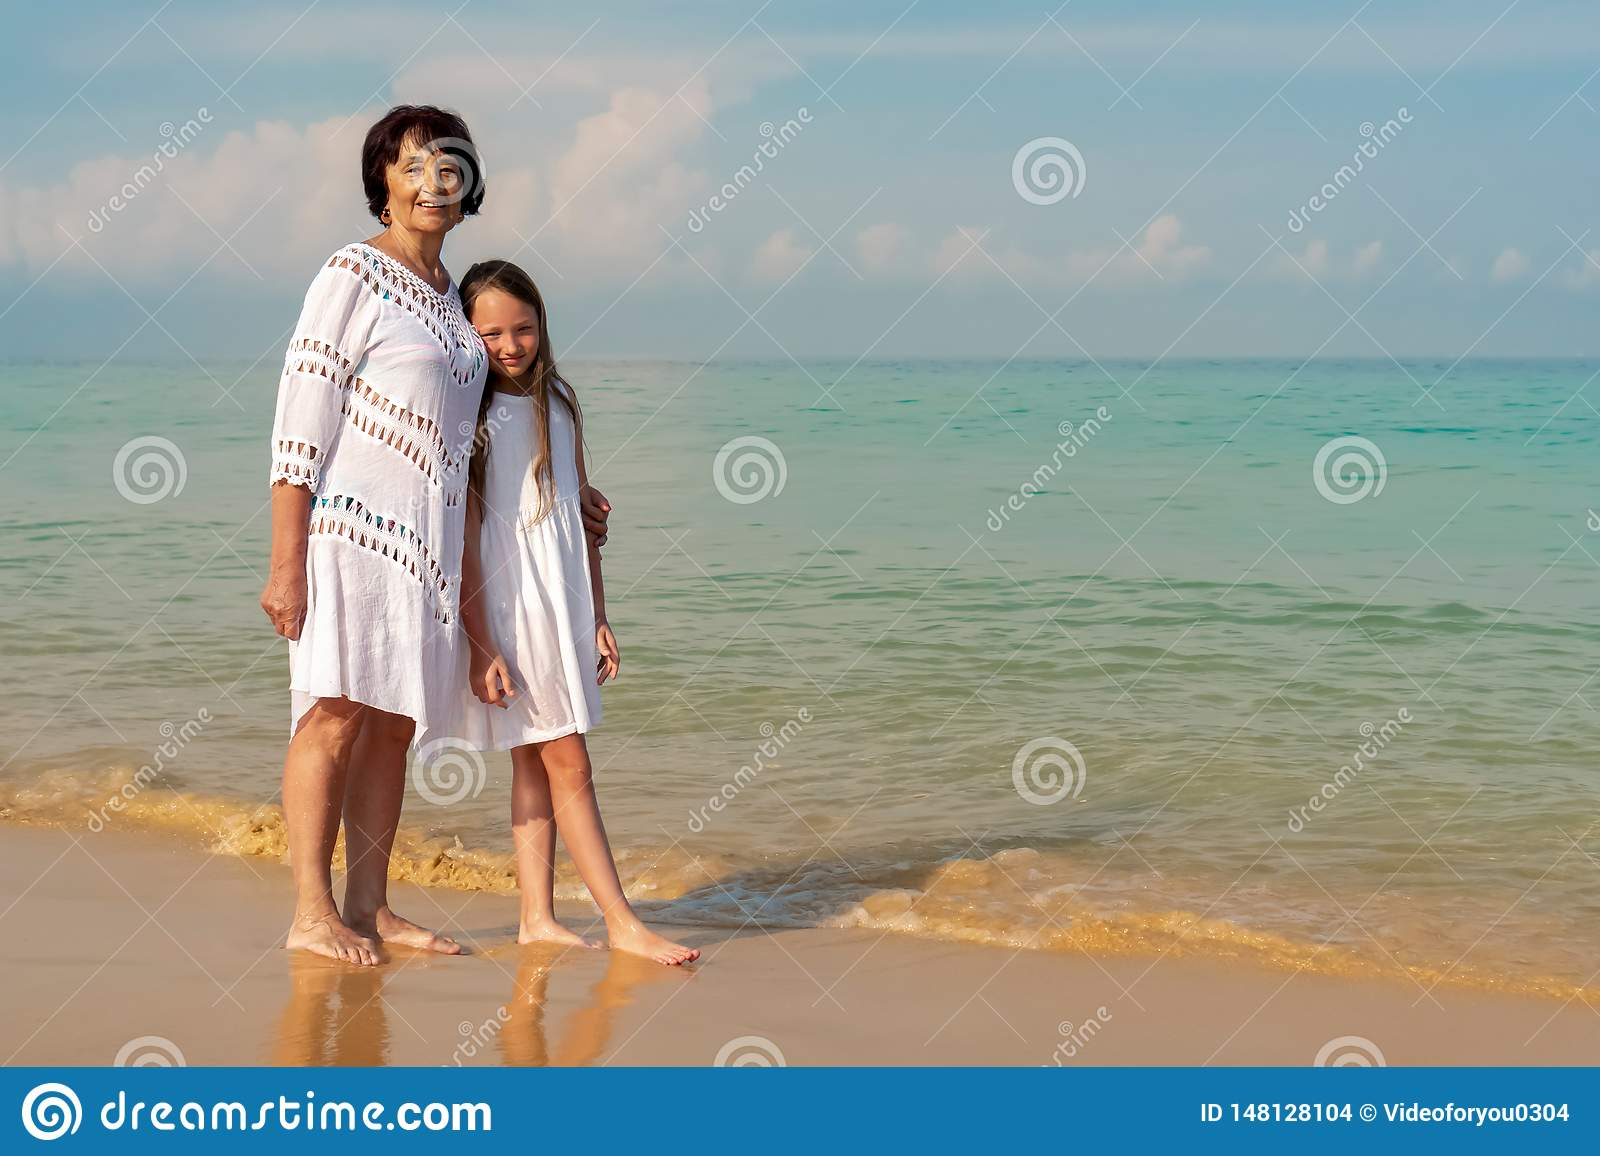 An elderly woman in a white dress with a beautiful girl in a white dress on the sea. Concept of sunny and happy summer